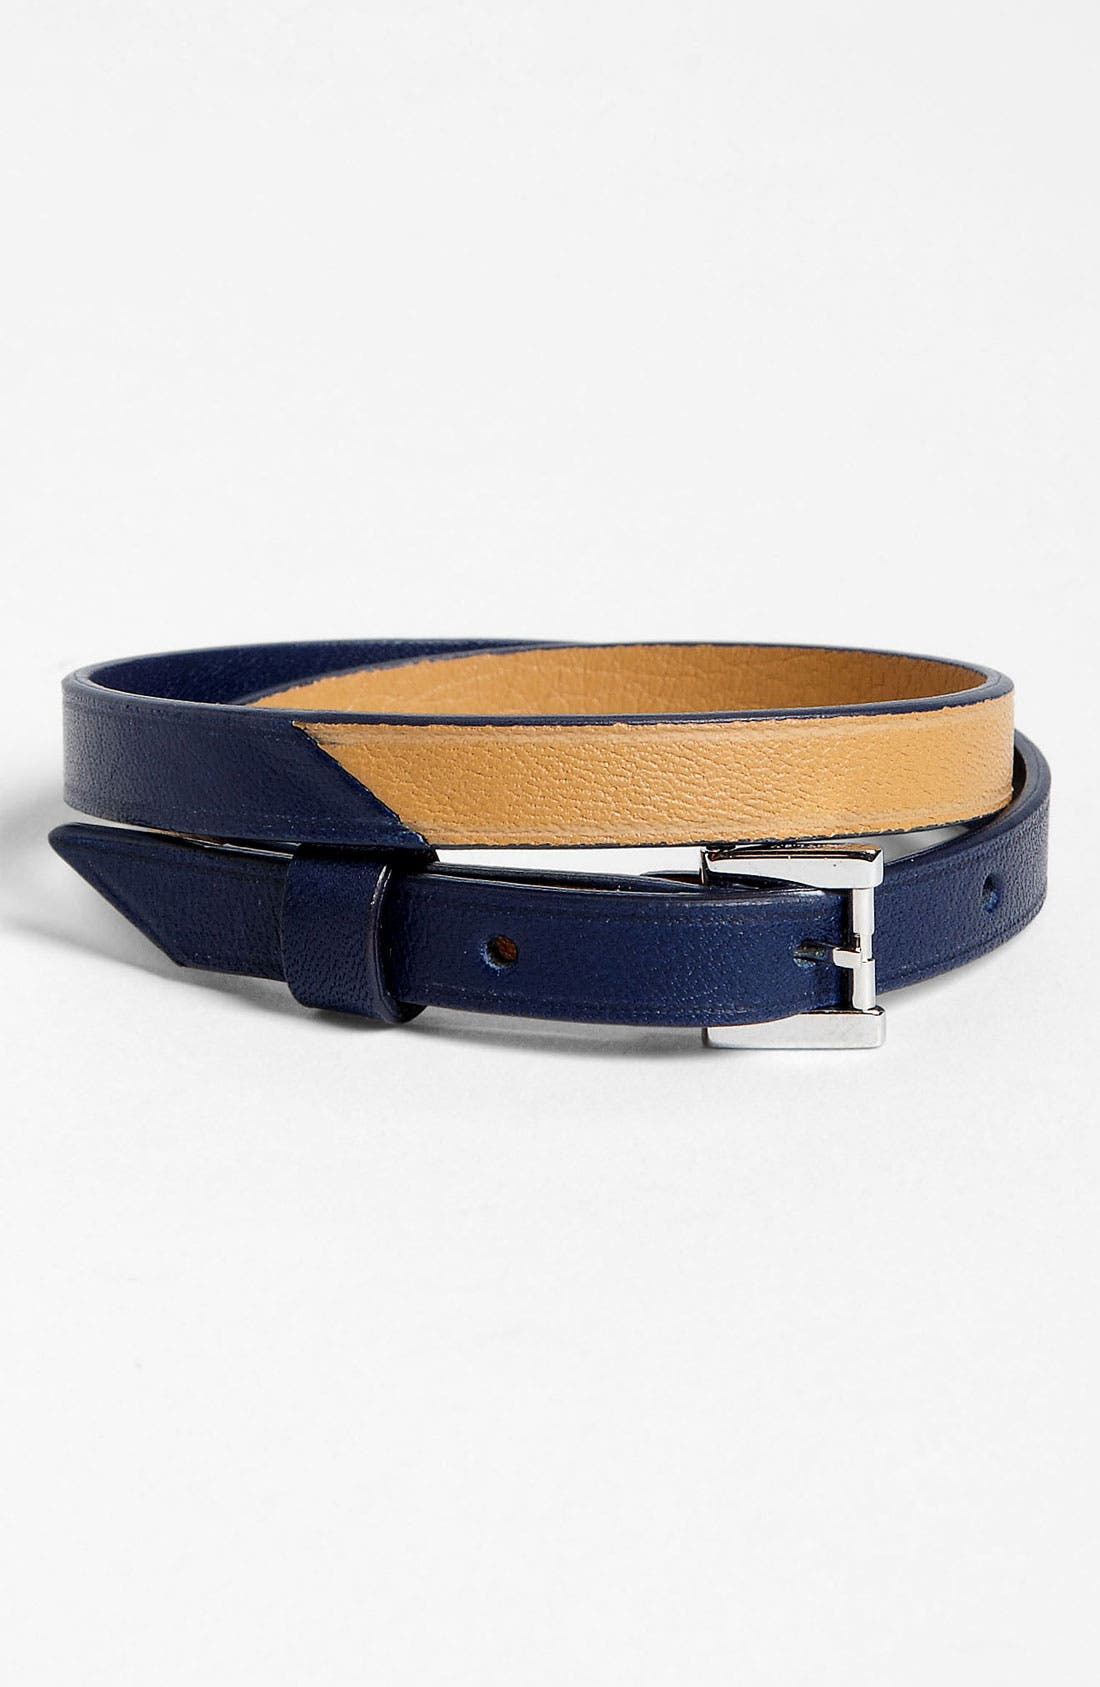 Main Image - WANT Les Essentiels de la Vie 'Vantaa' Leather Bracelet